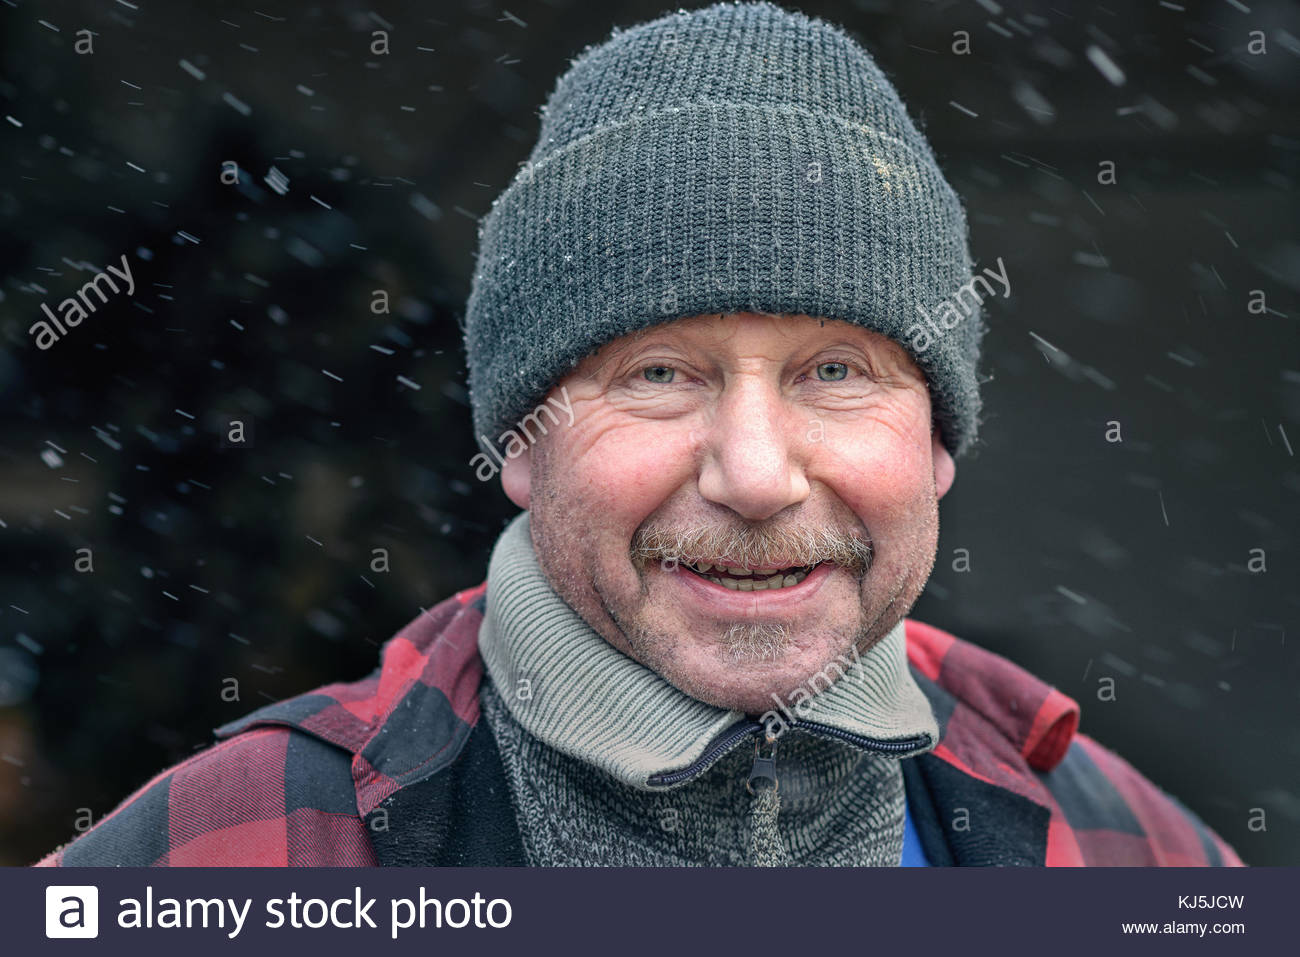 Happy man with a mustache in winter clothing - Stock Image